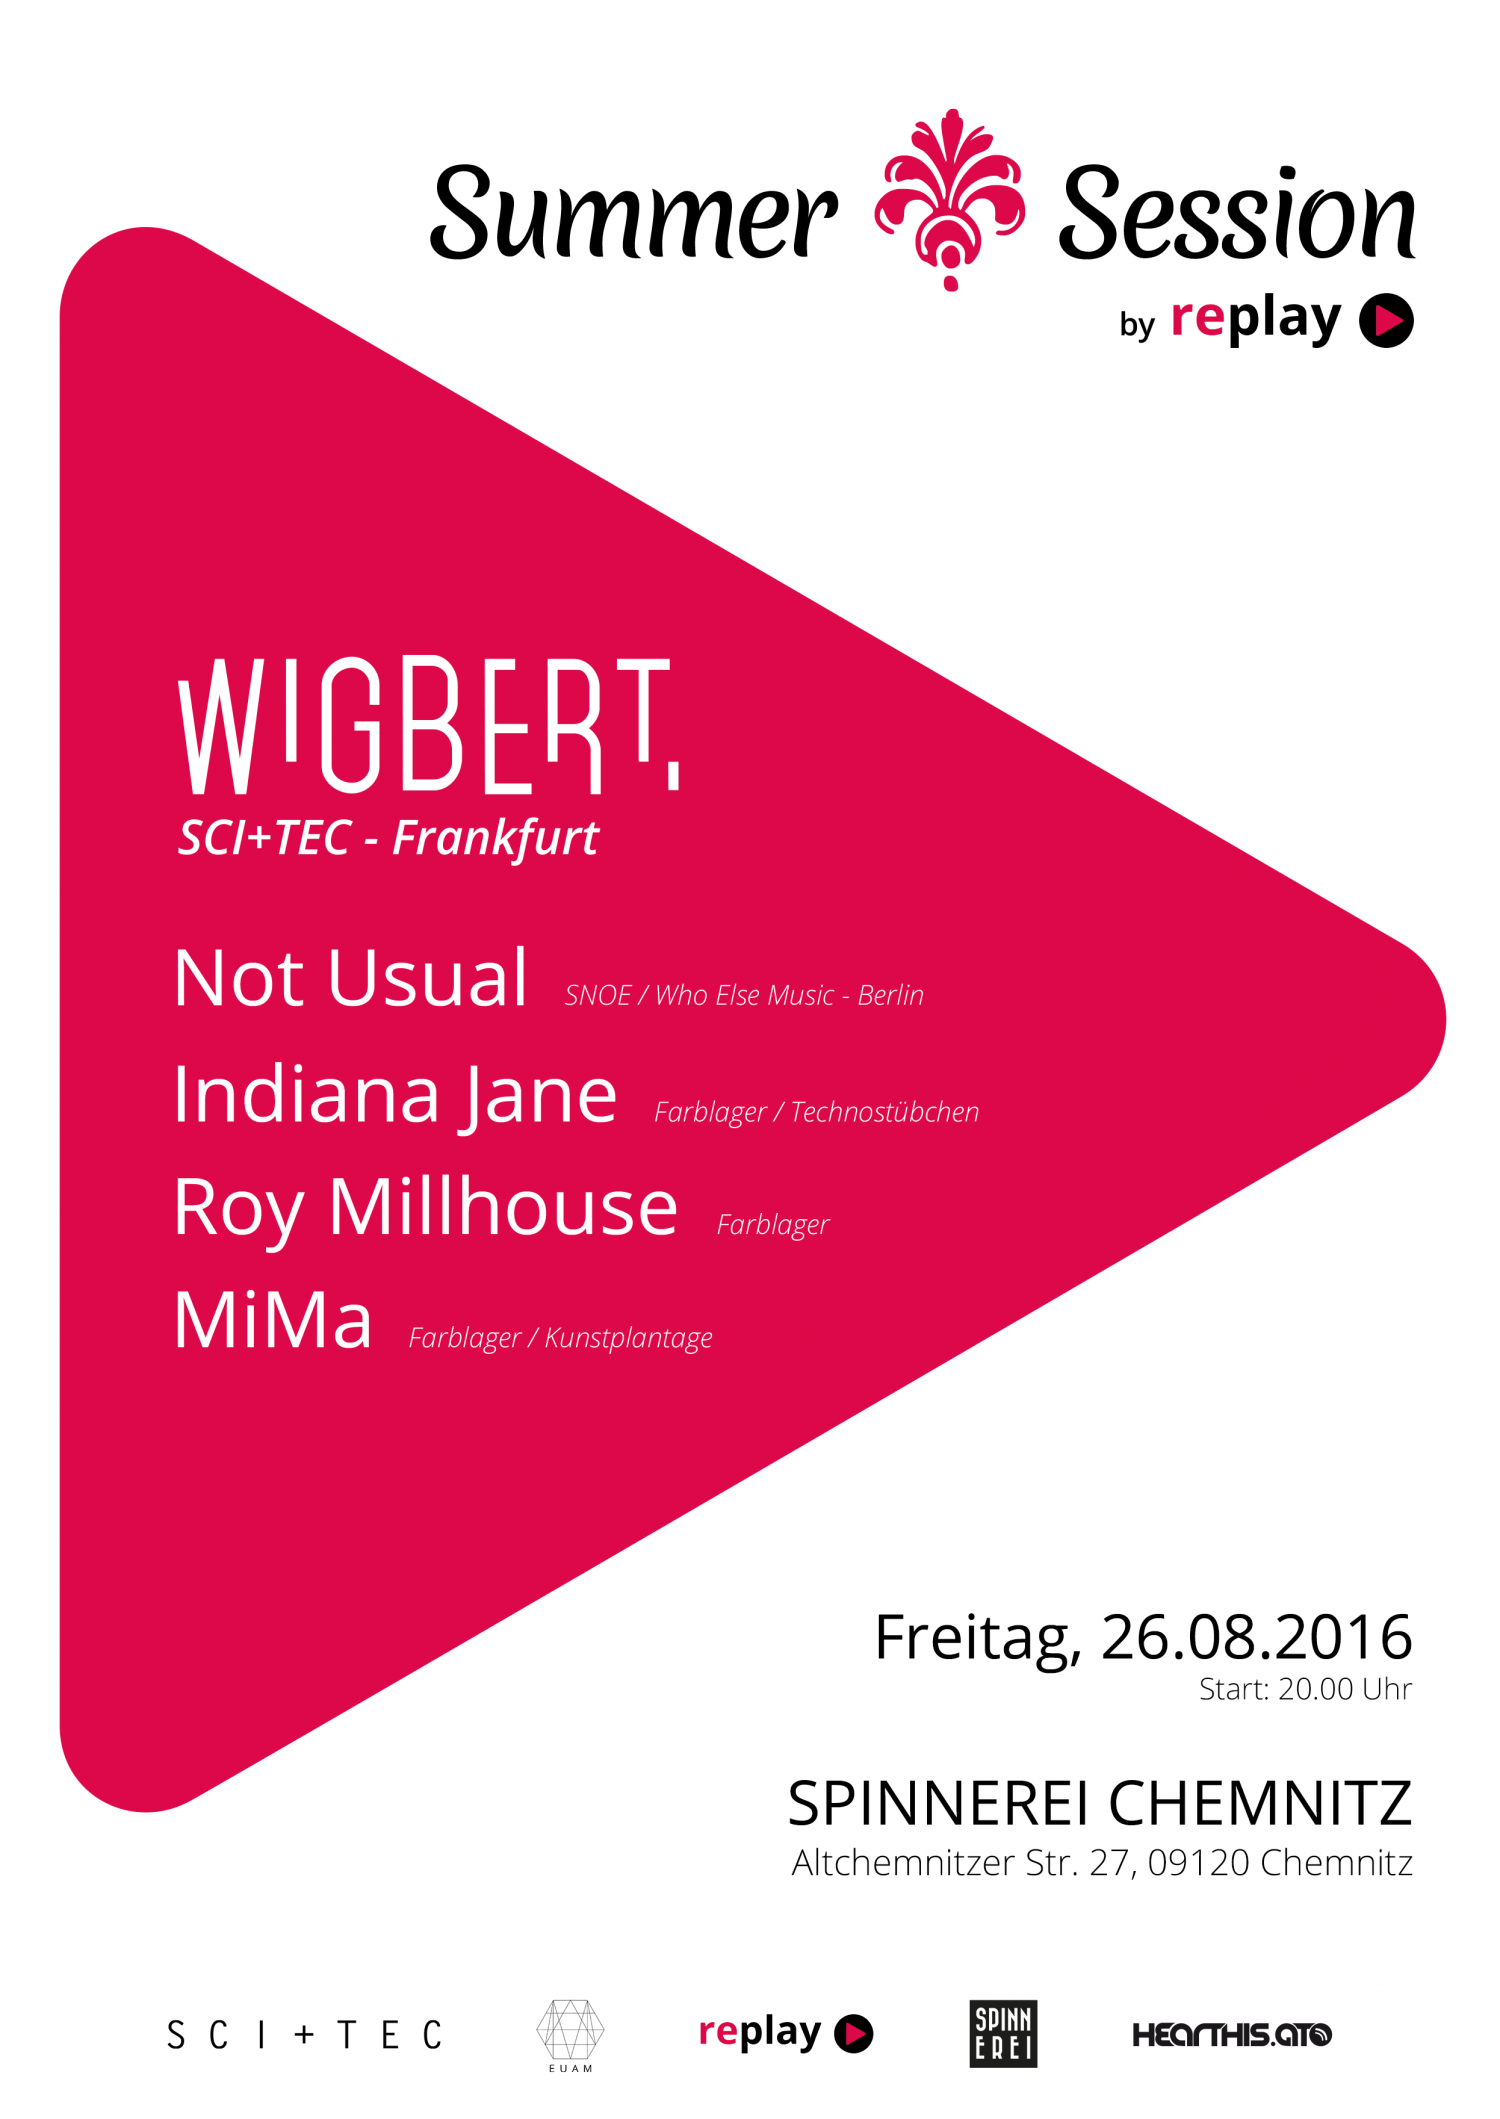 26.08.2016 - Summer Session by replay mit Wigbert & Not Usual - Spinnerei, Chemnitz